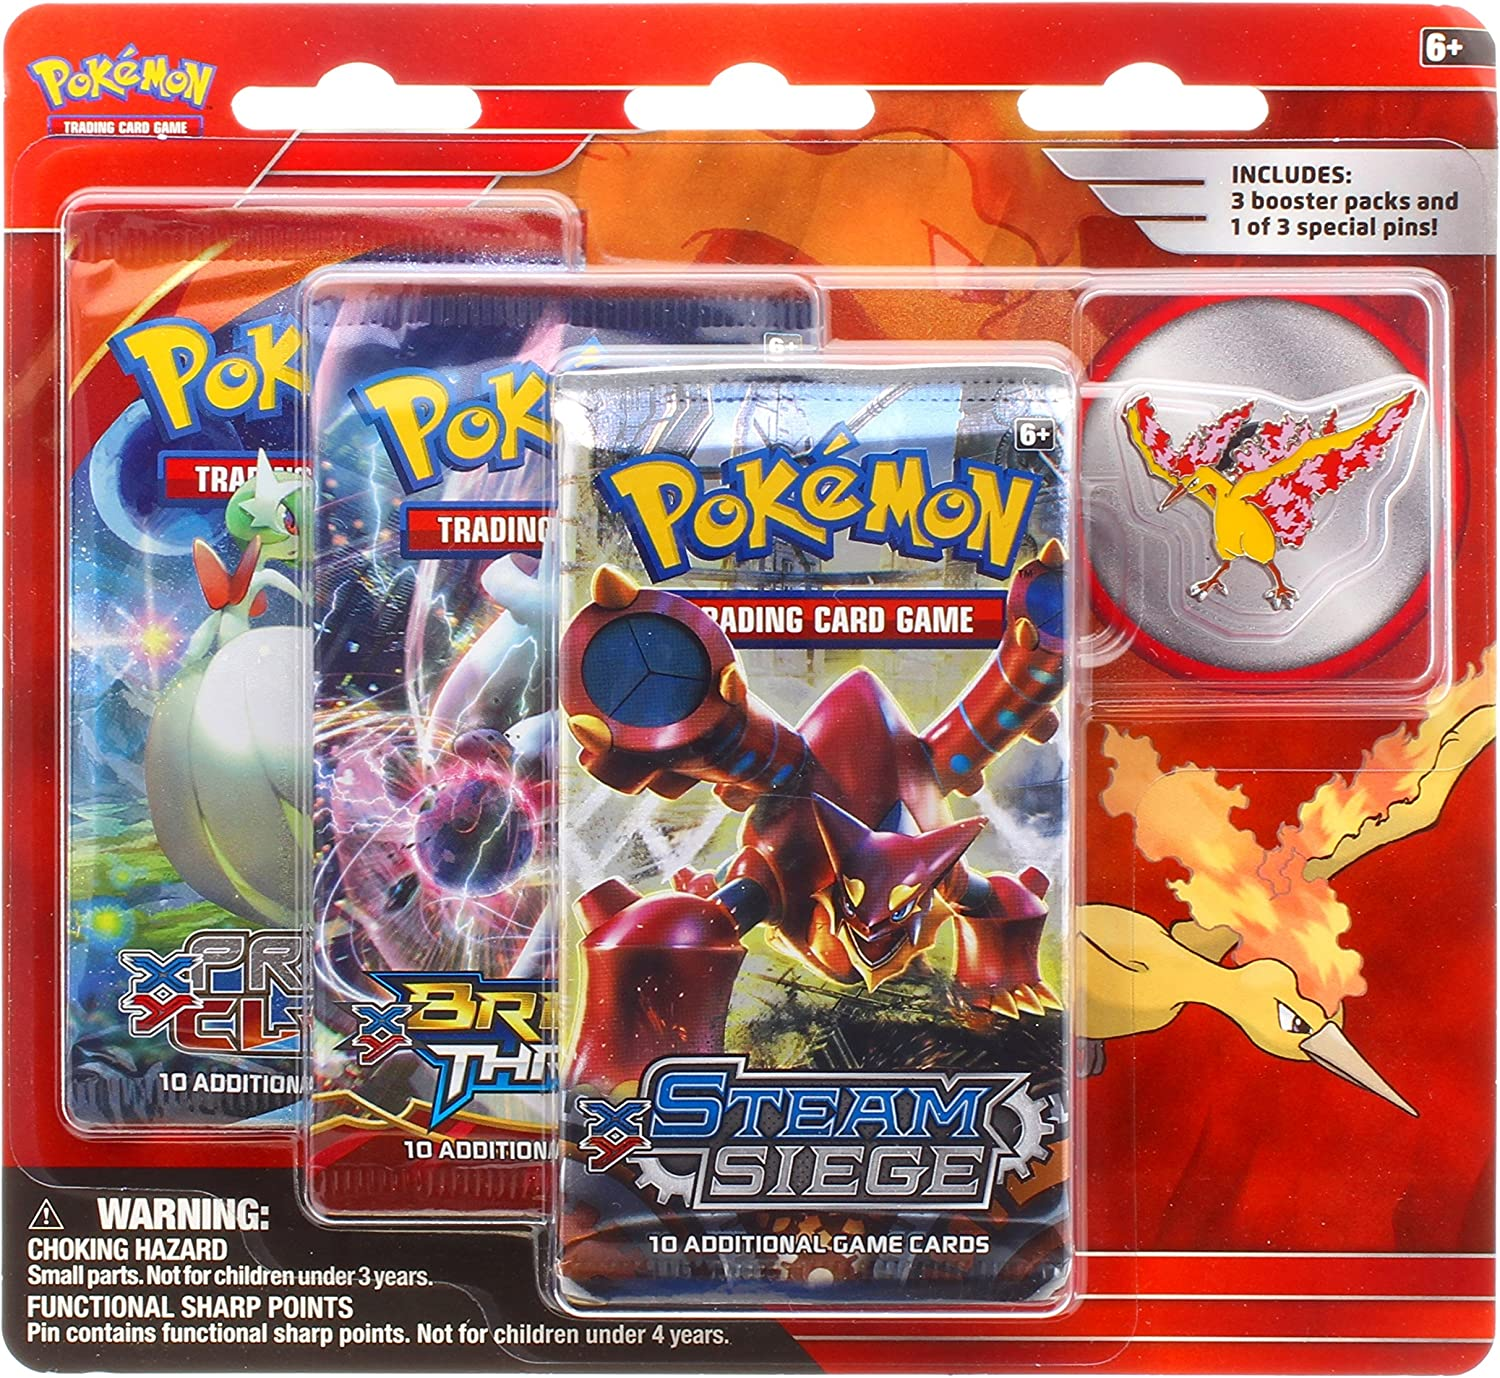 Pokemon TCG  Legendary Birds Blister Pack Containing 3 Booster Packs and Featuring A Moltres Collector's Pin